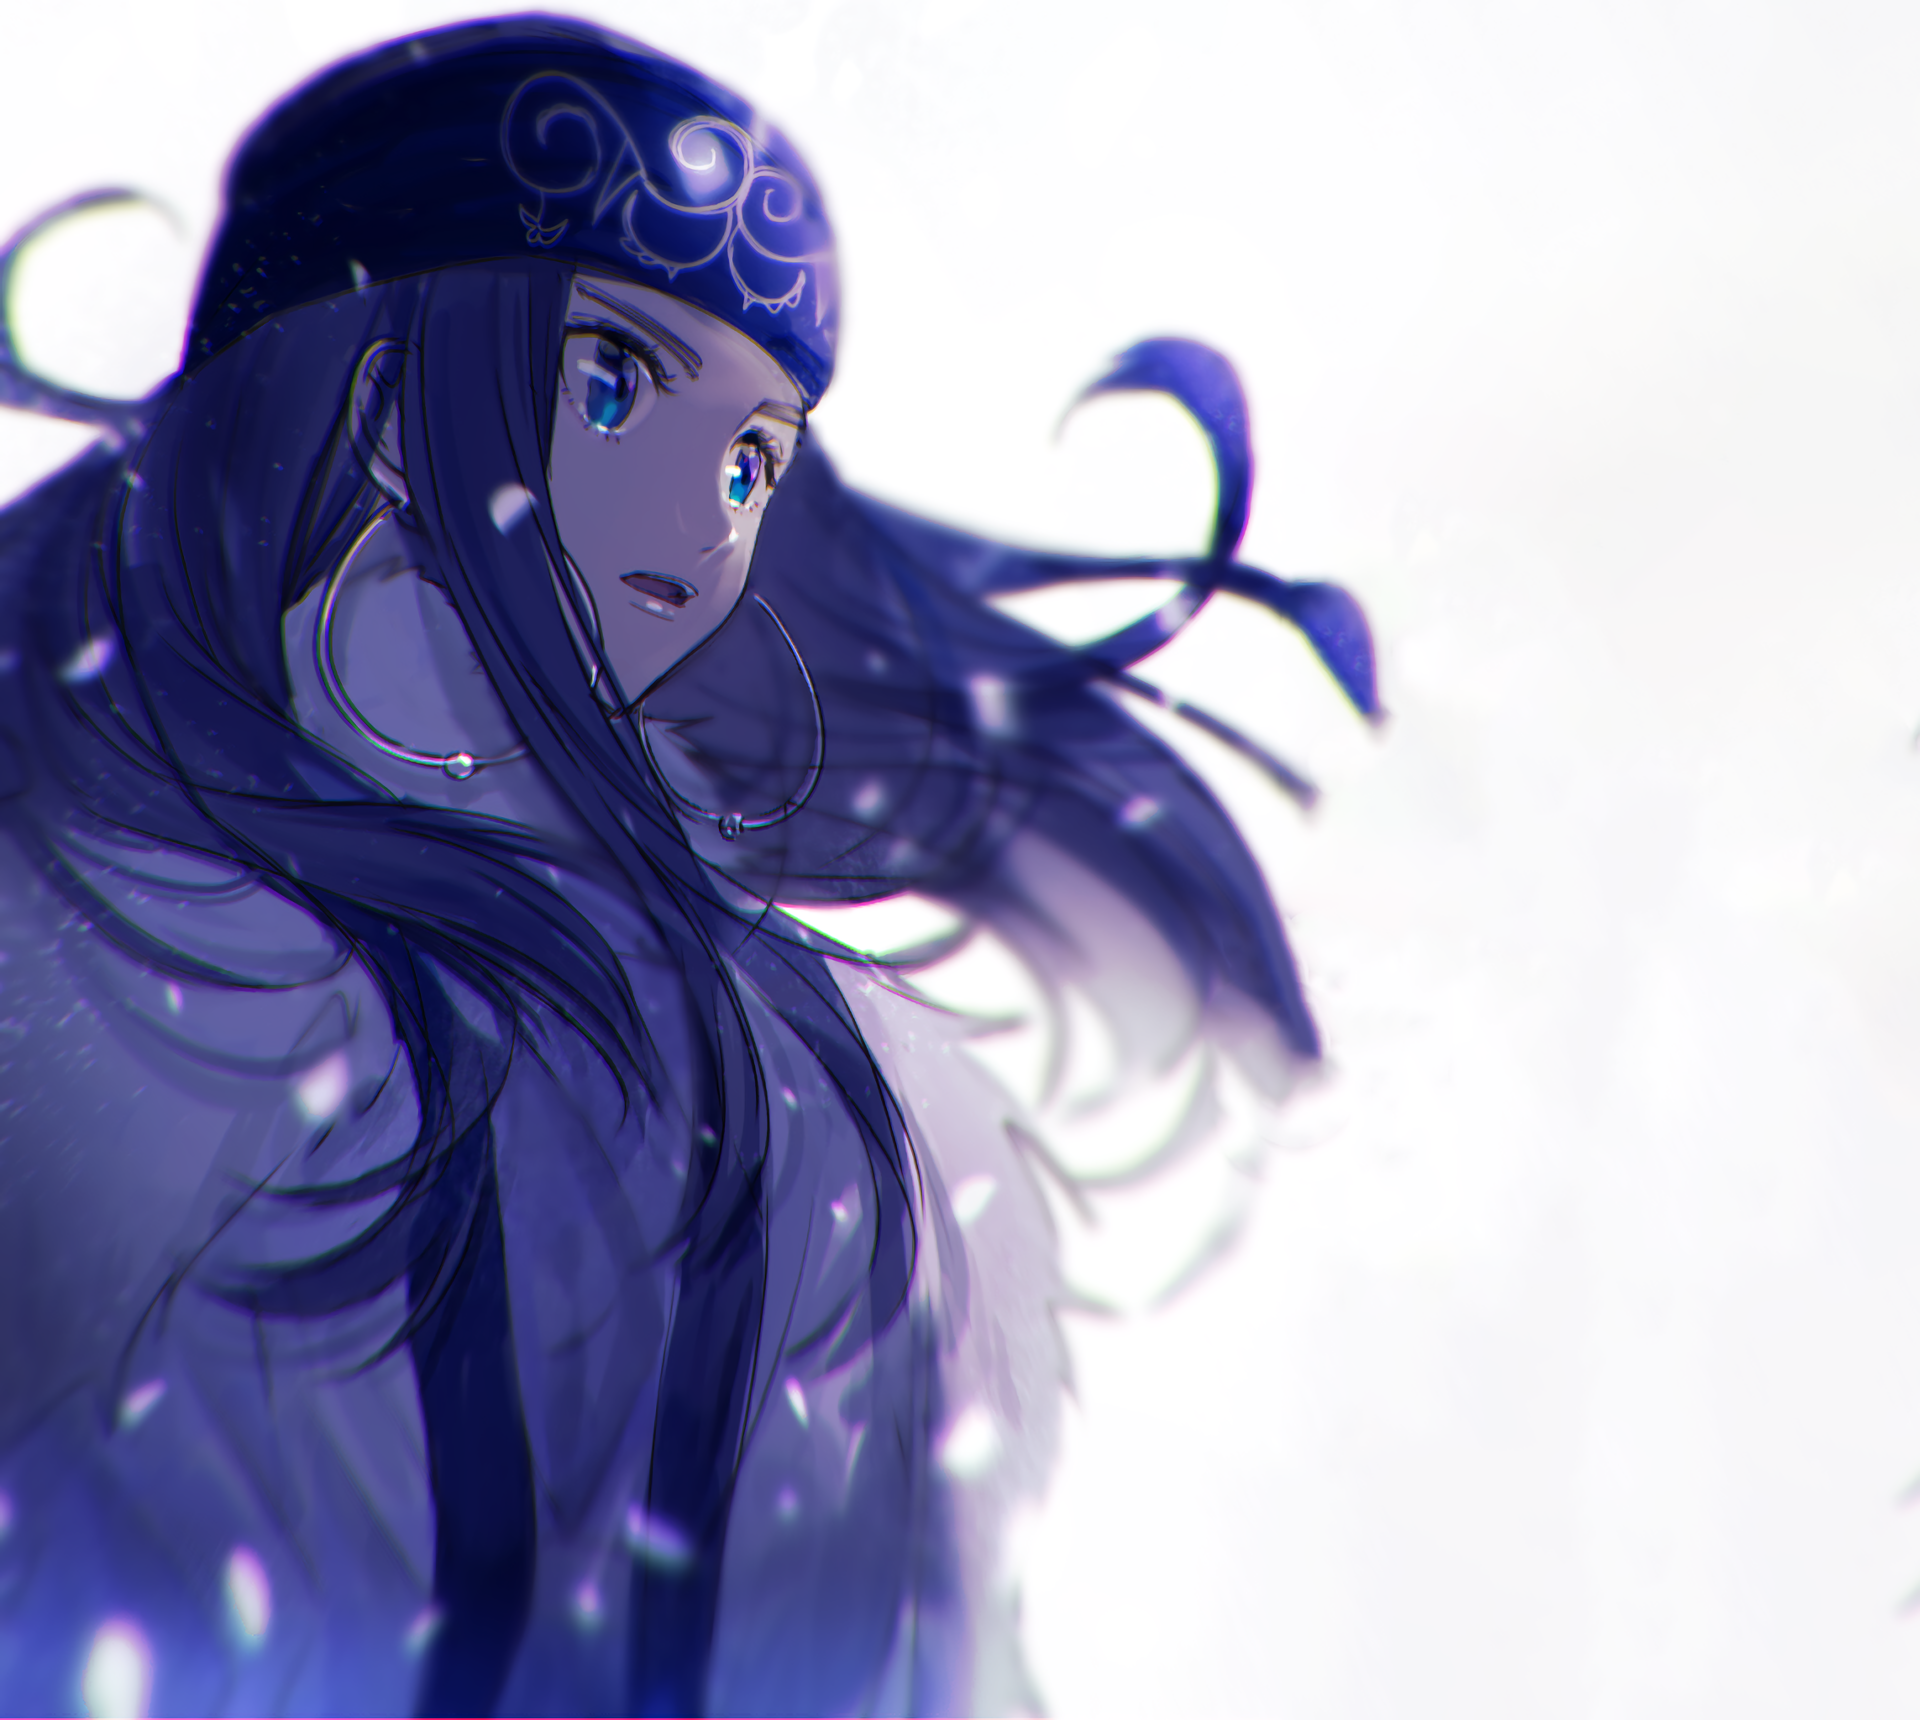 Asirpa Hd Wallpaper Background Image 1920x1720 Id 1004143 Images, Photos, Reviews